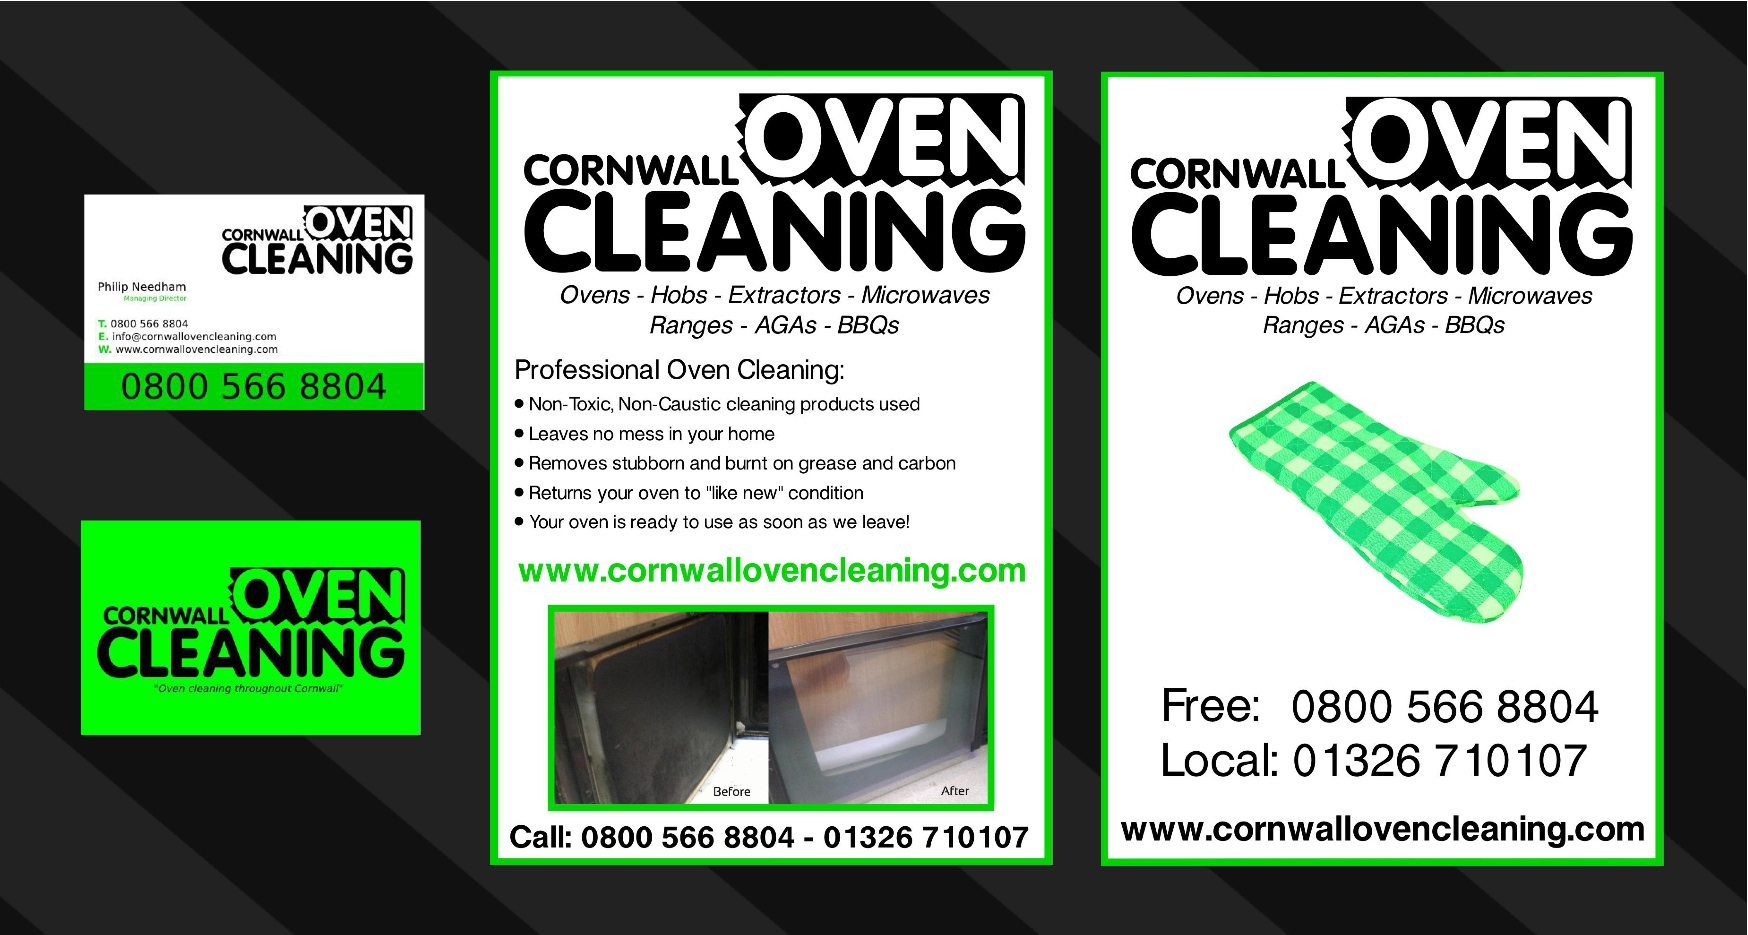 oven cleaning printed materials